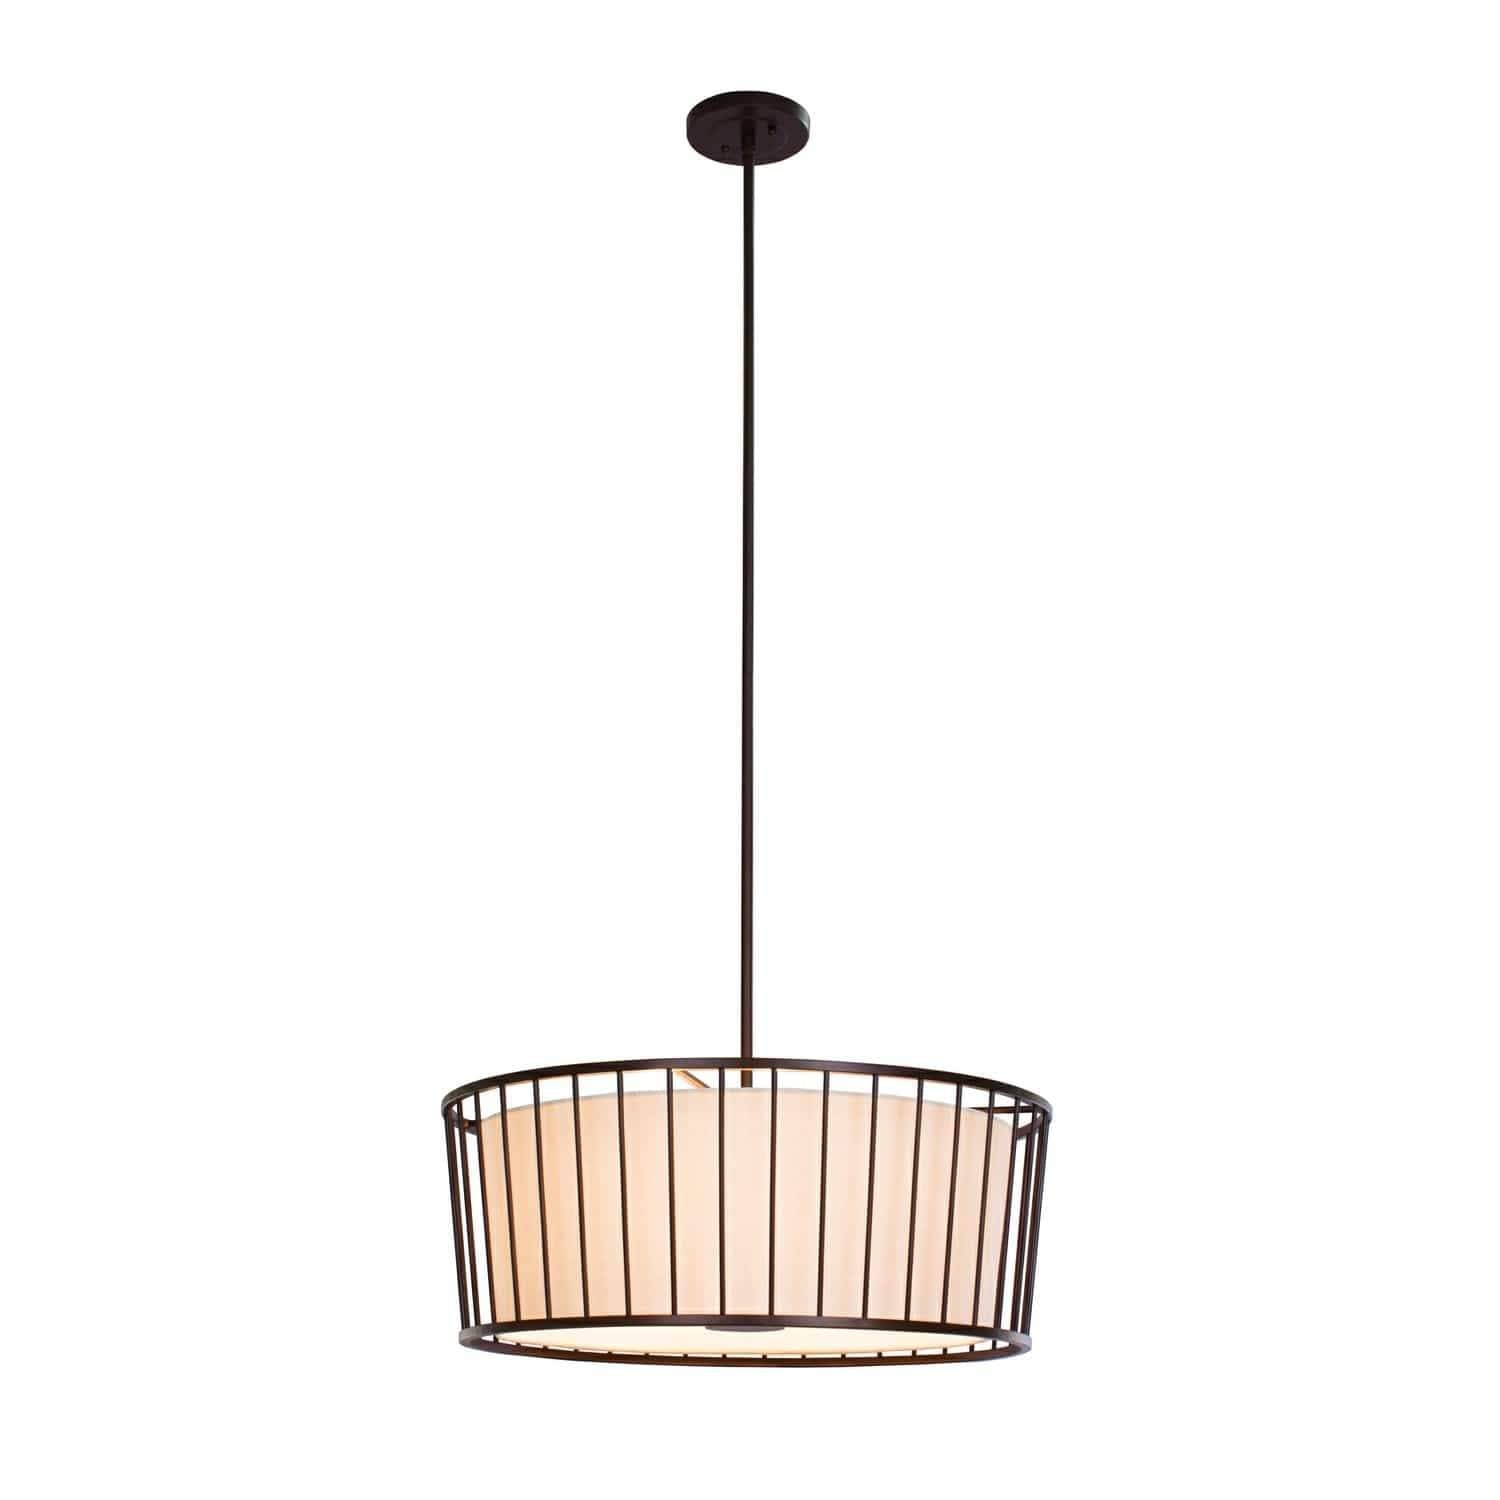 Kalco Lighting Pendants Bronze Pacifica 24 Inch Convertible Pendant - Semi Flush By Kalco Lighting 507052